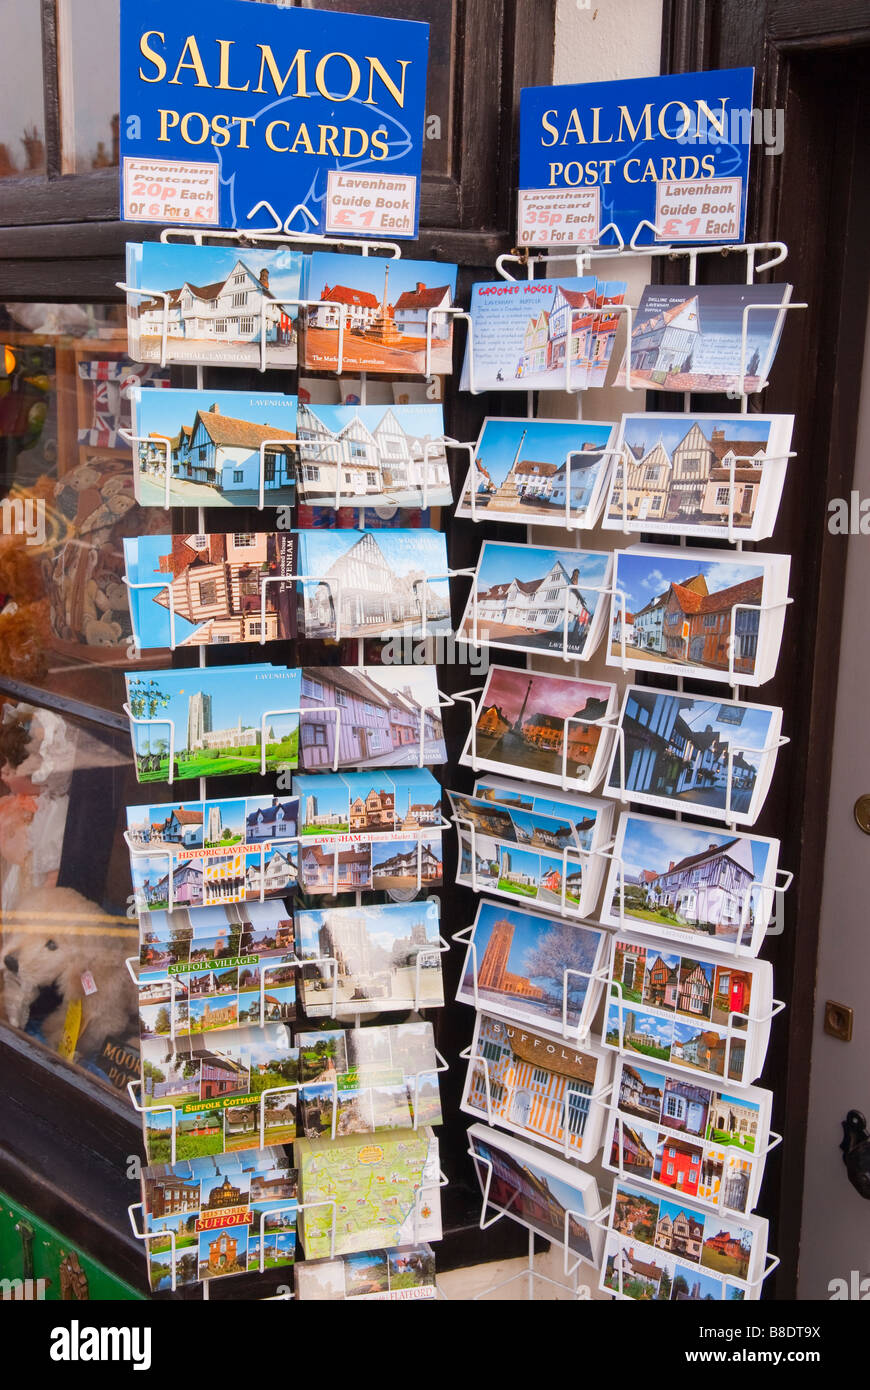 Postcards for sale on a postcard stand outside a shop store in Lavenham,Suffolk,Uk - Stock Image